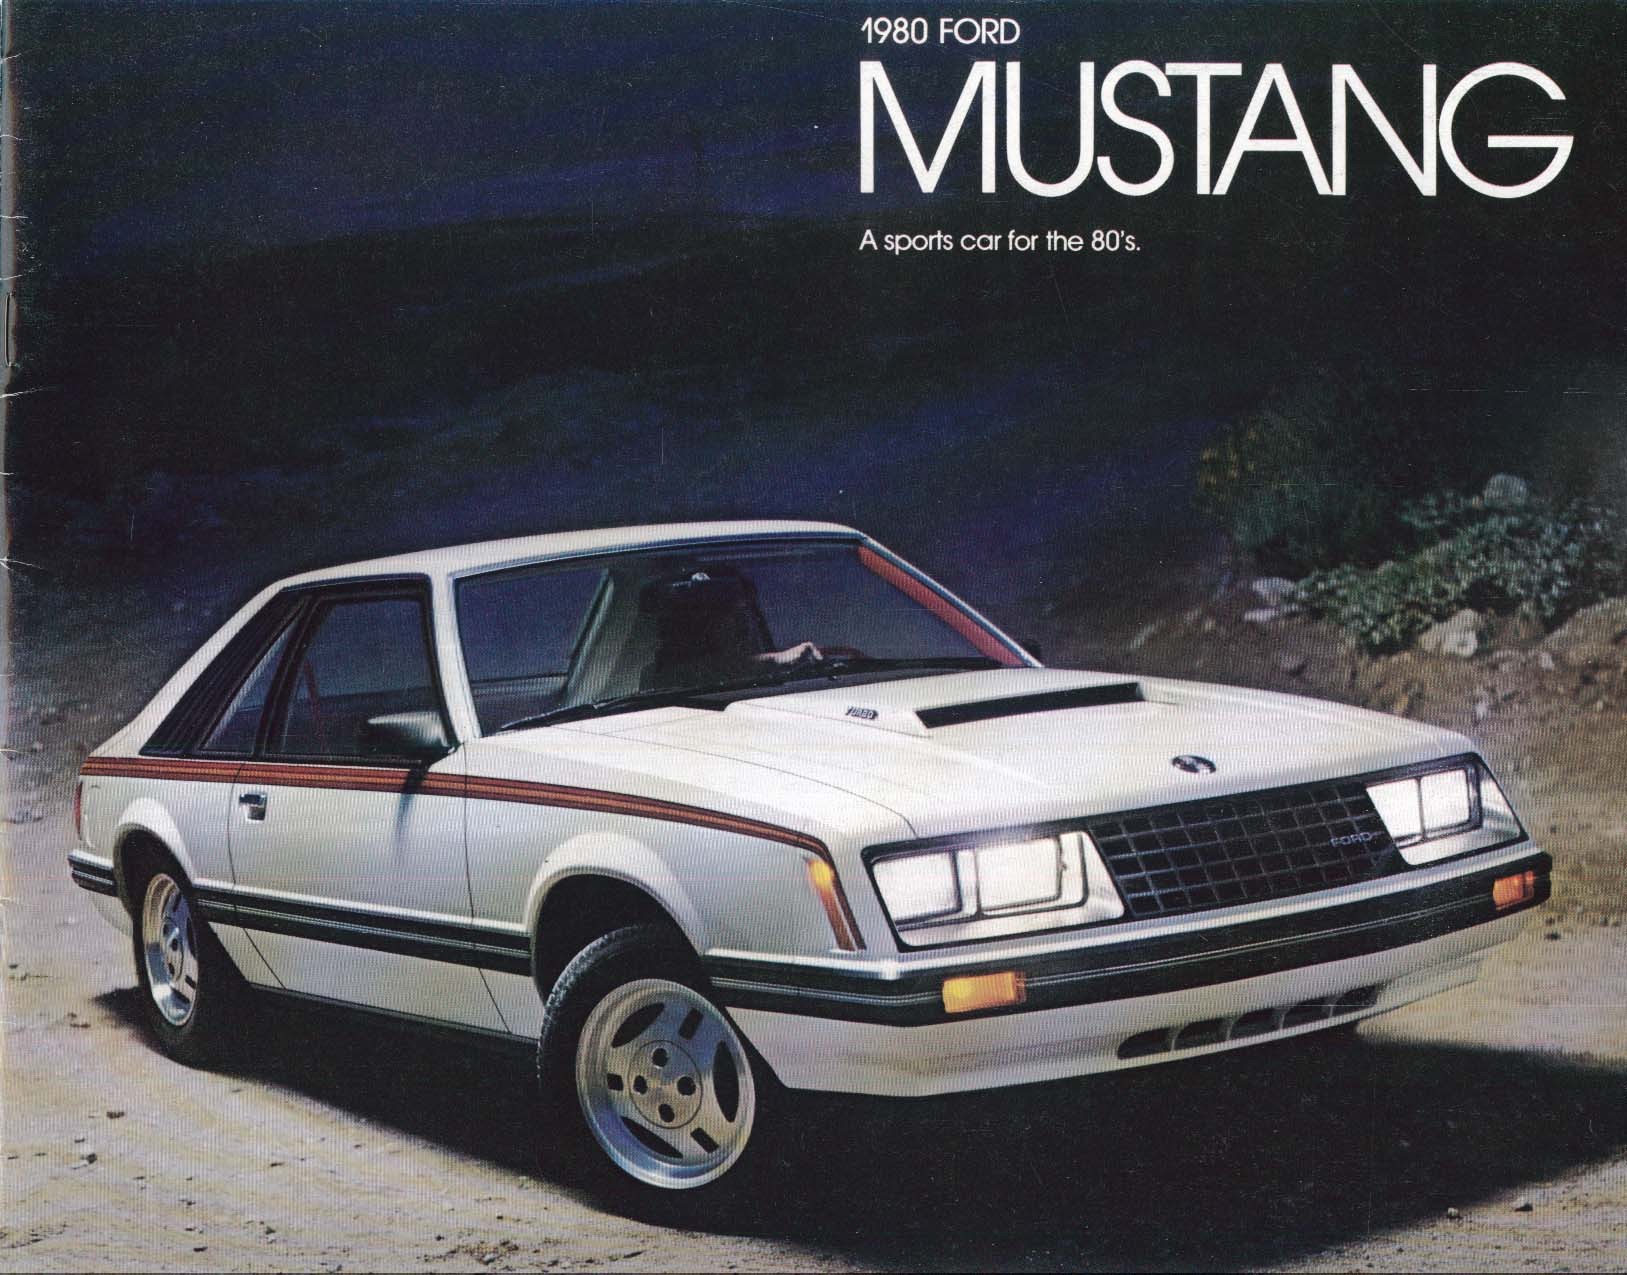 1980 Ford Mustang sales brochure: Ghia, Cobra, etc